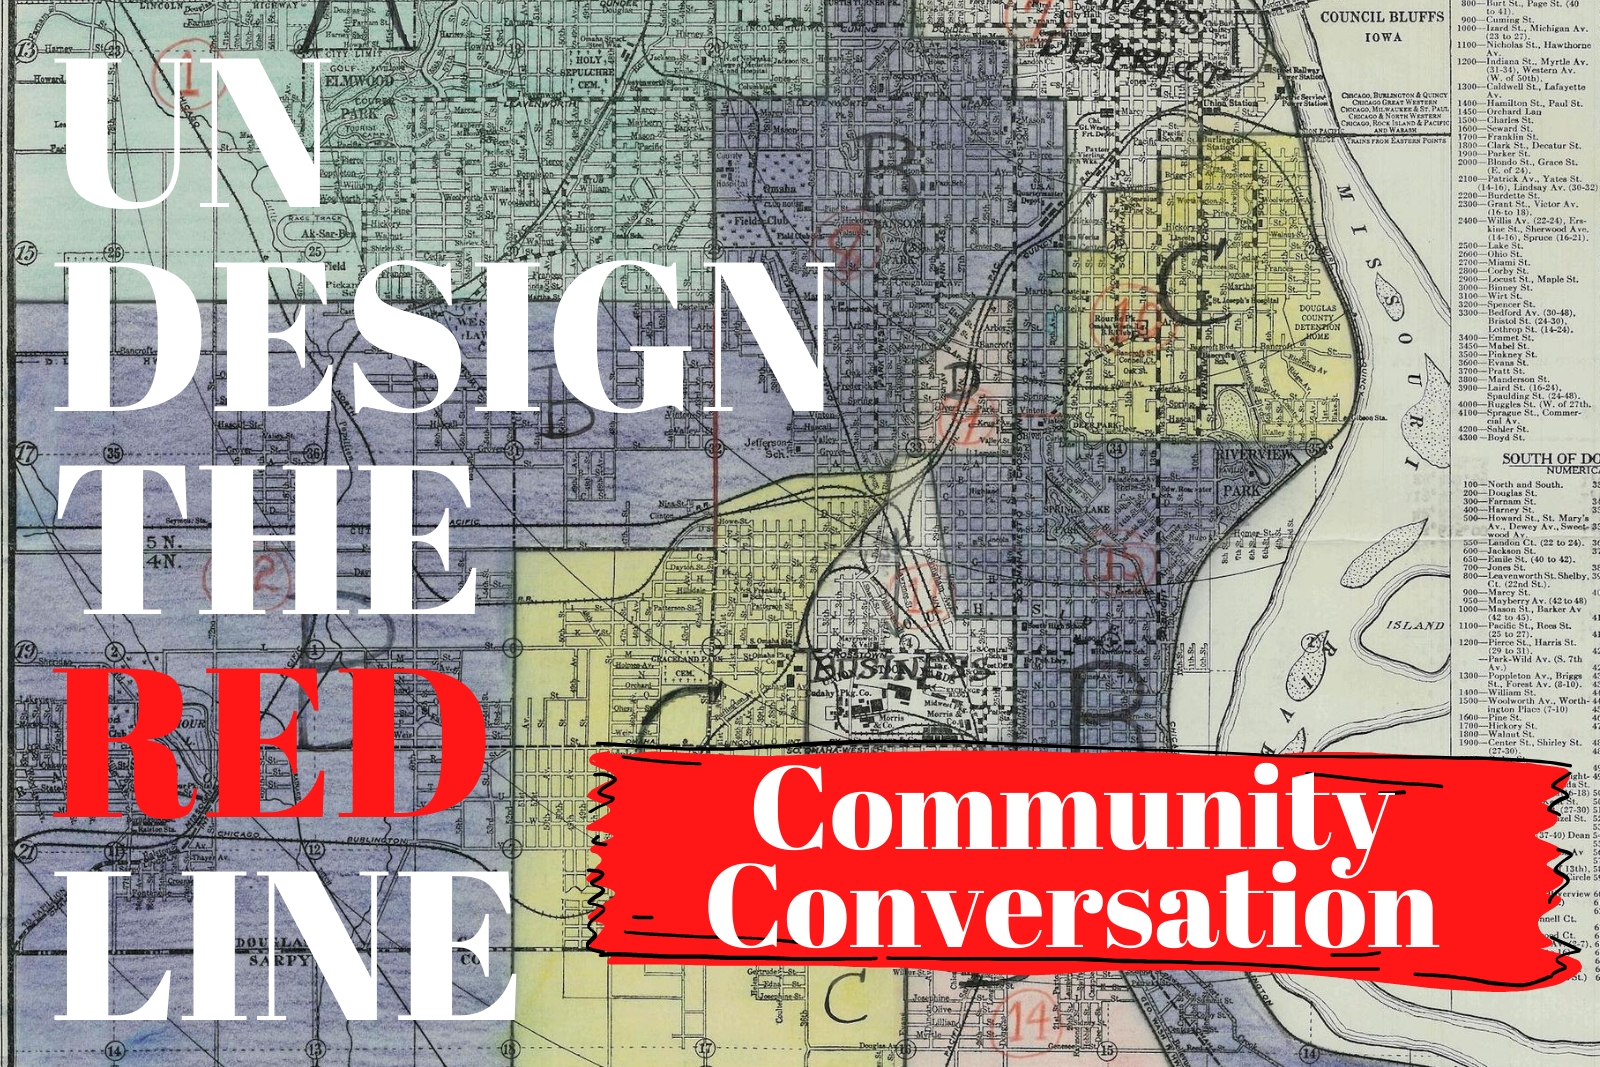 Undesign the redline community conversation text overlaid 1930s Omaha Redline map